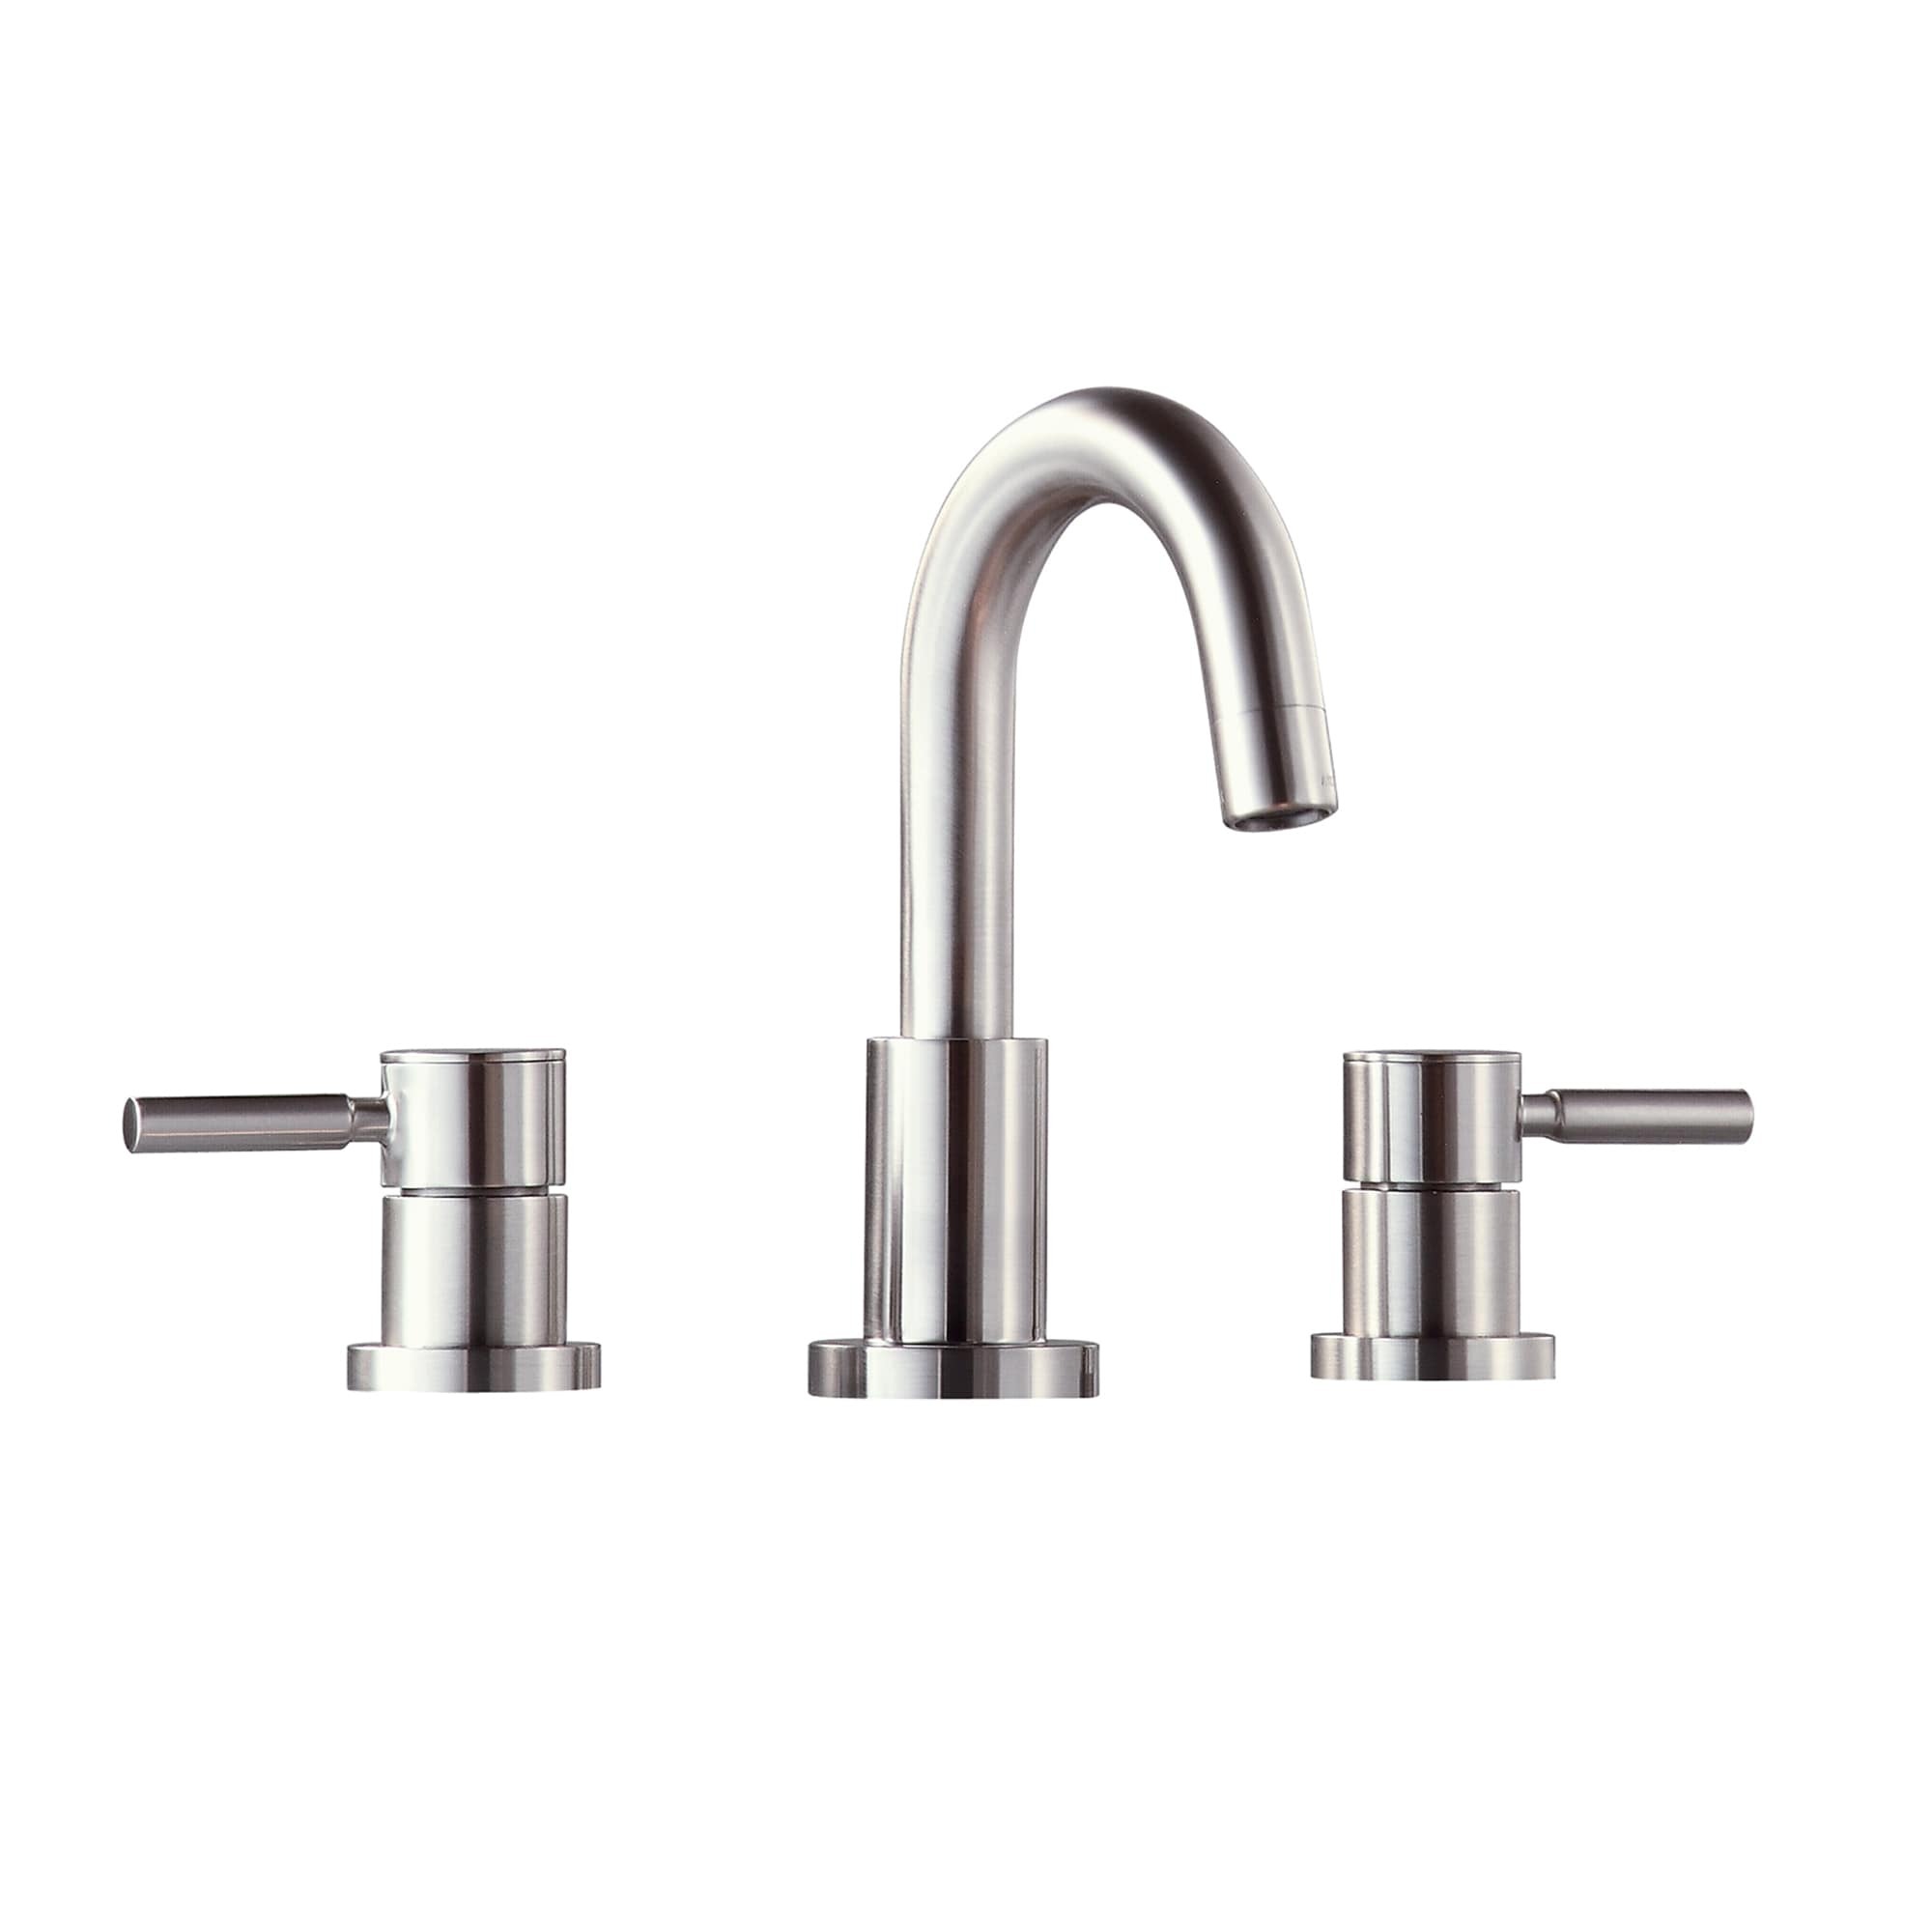 handle less lavatory handles faucet baliza widespread bathroom pin two mini brizo